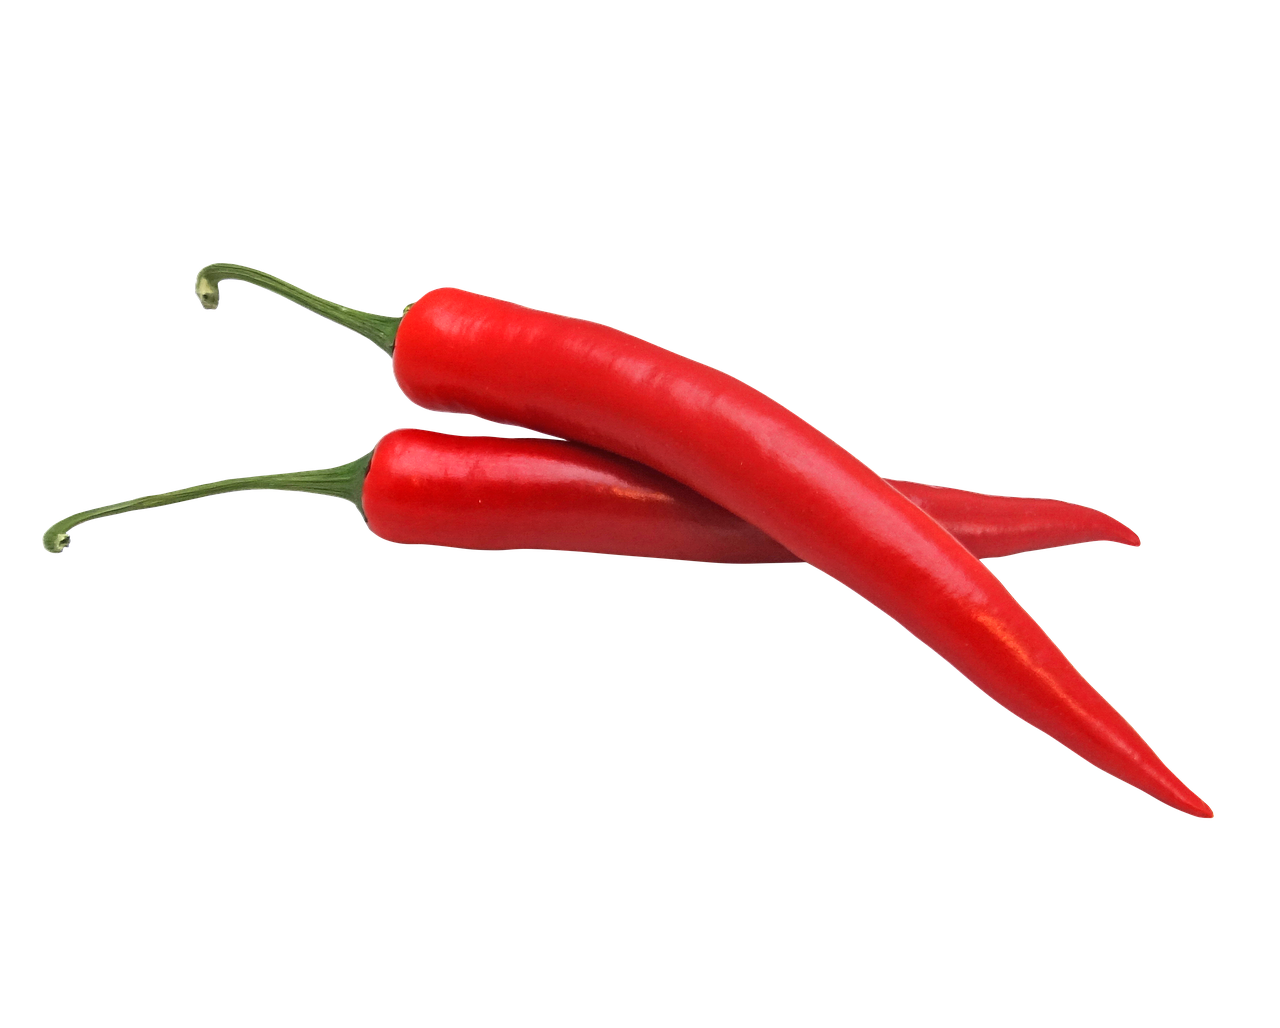 the insecticidal potential of chili pepper leaf extract against termites